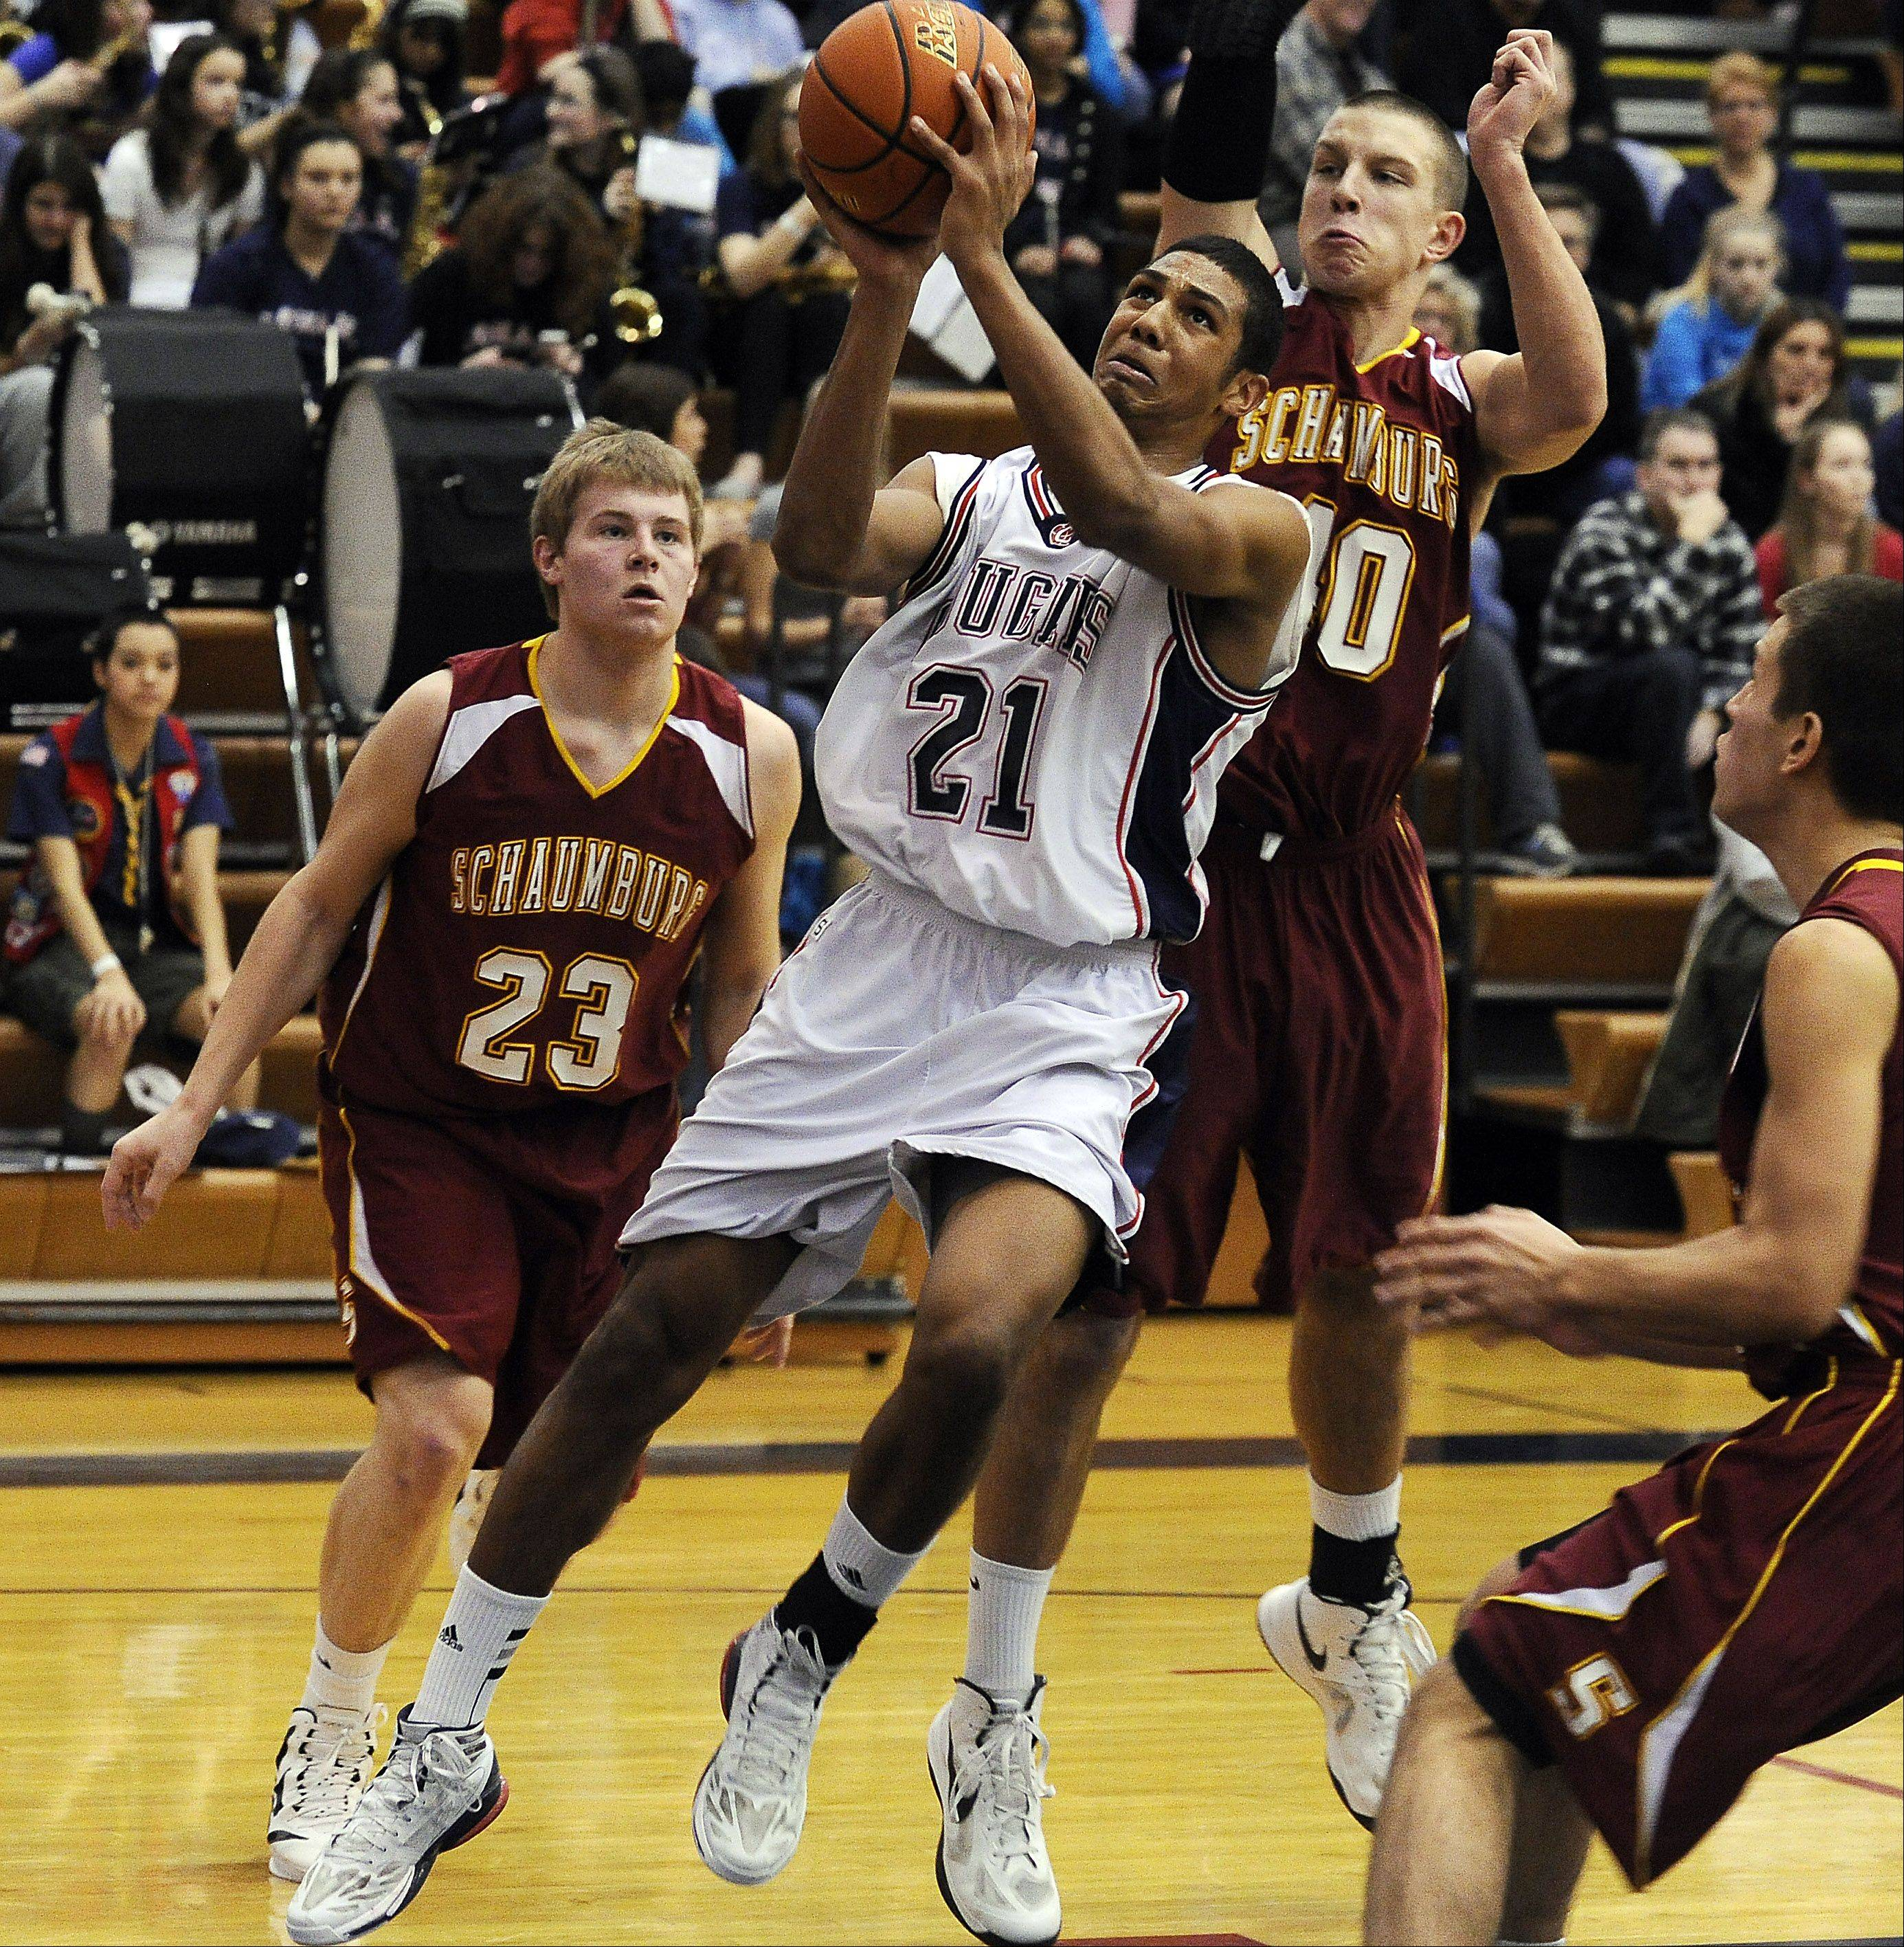 Conant�s D�Angelo McBride drives around Schaumburg defenders for a bucket in the first half at Conant on Saturday.